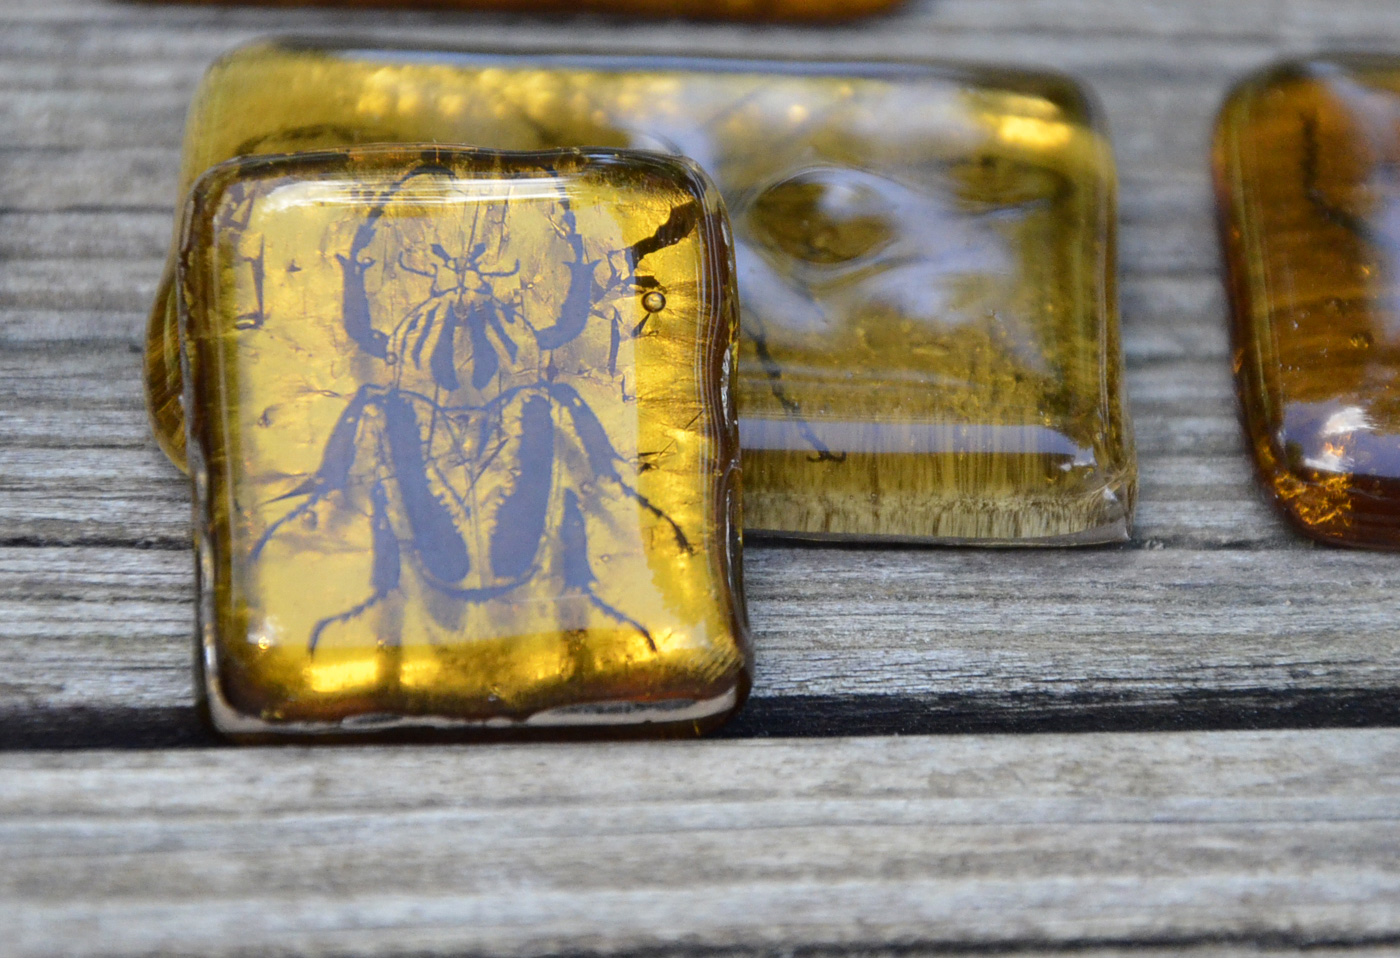 Test 6: The Platinum Sandwich  was one of our favorites. Reflections, depth and even some well-placed bubbles (purely accidental) give this  Insect in Amber  a very interesting look. The way the platinum peeks out between the two glass layers is also a very nice feature.